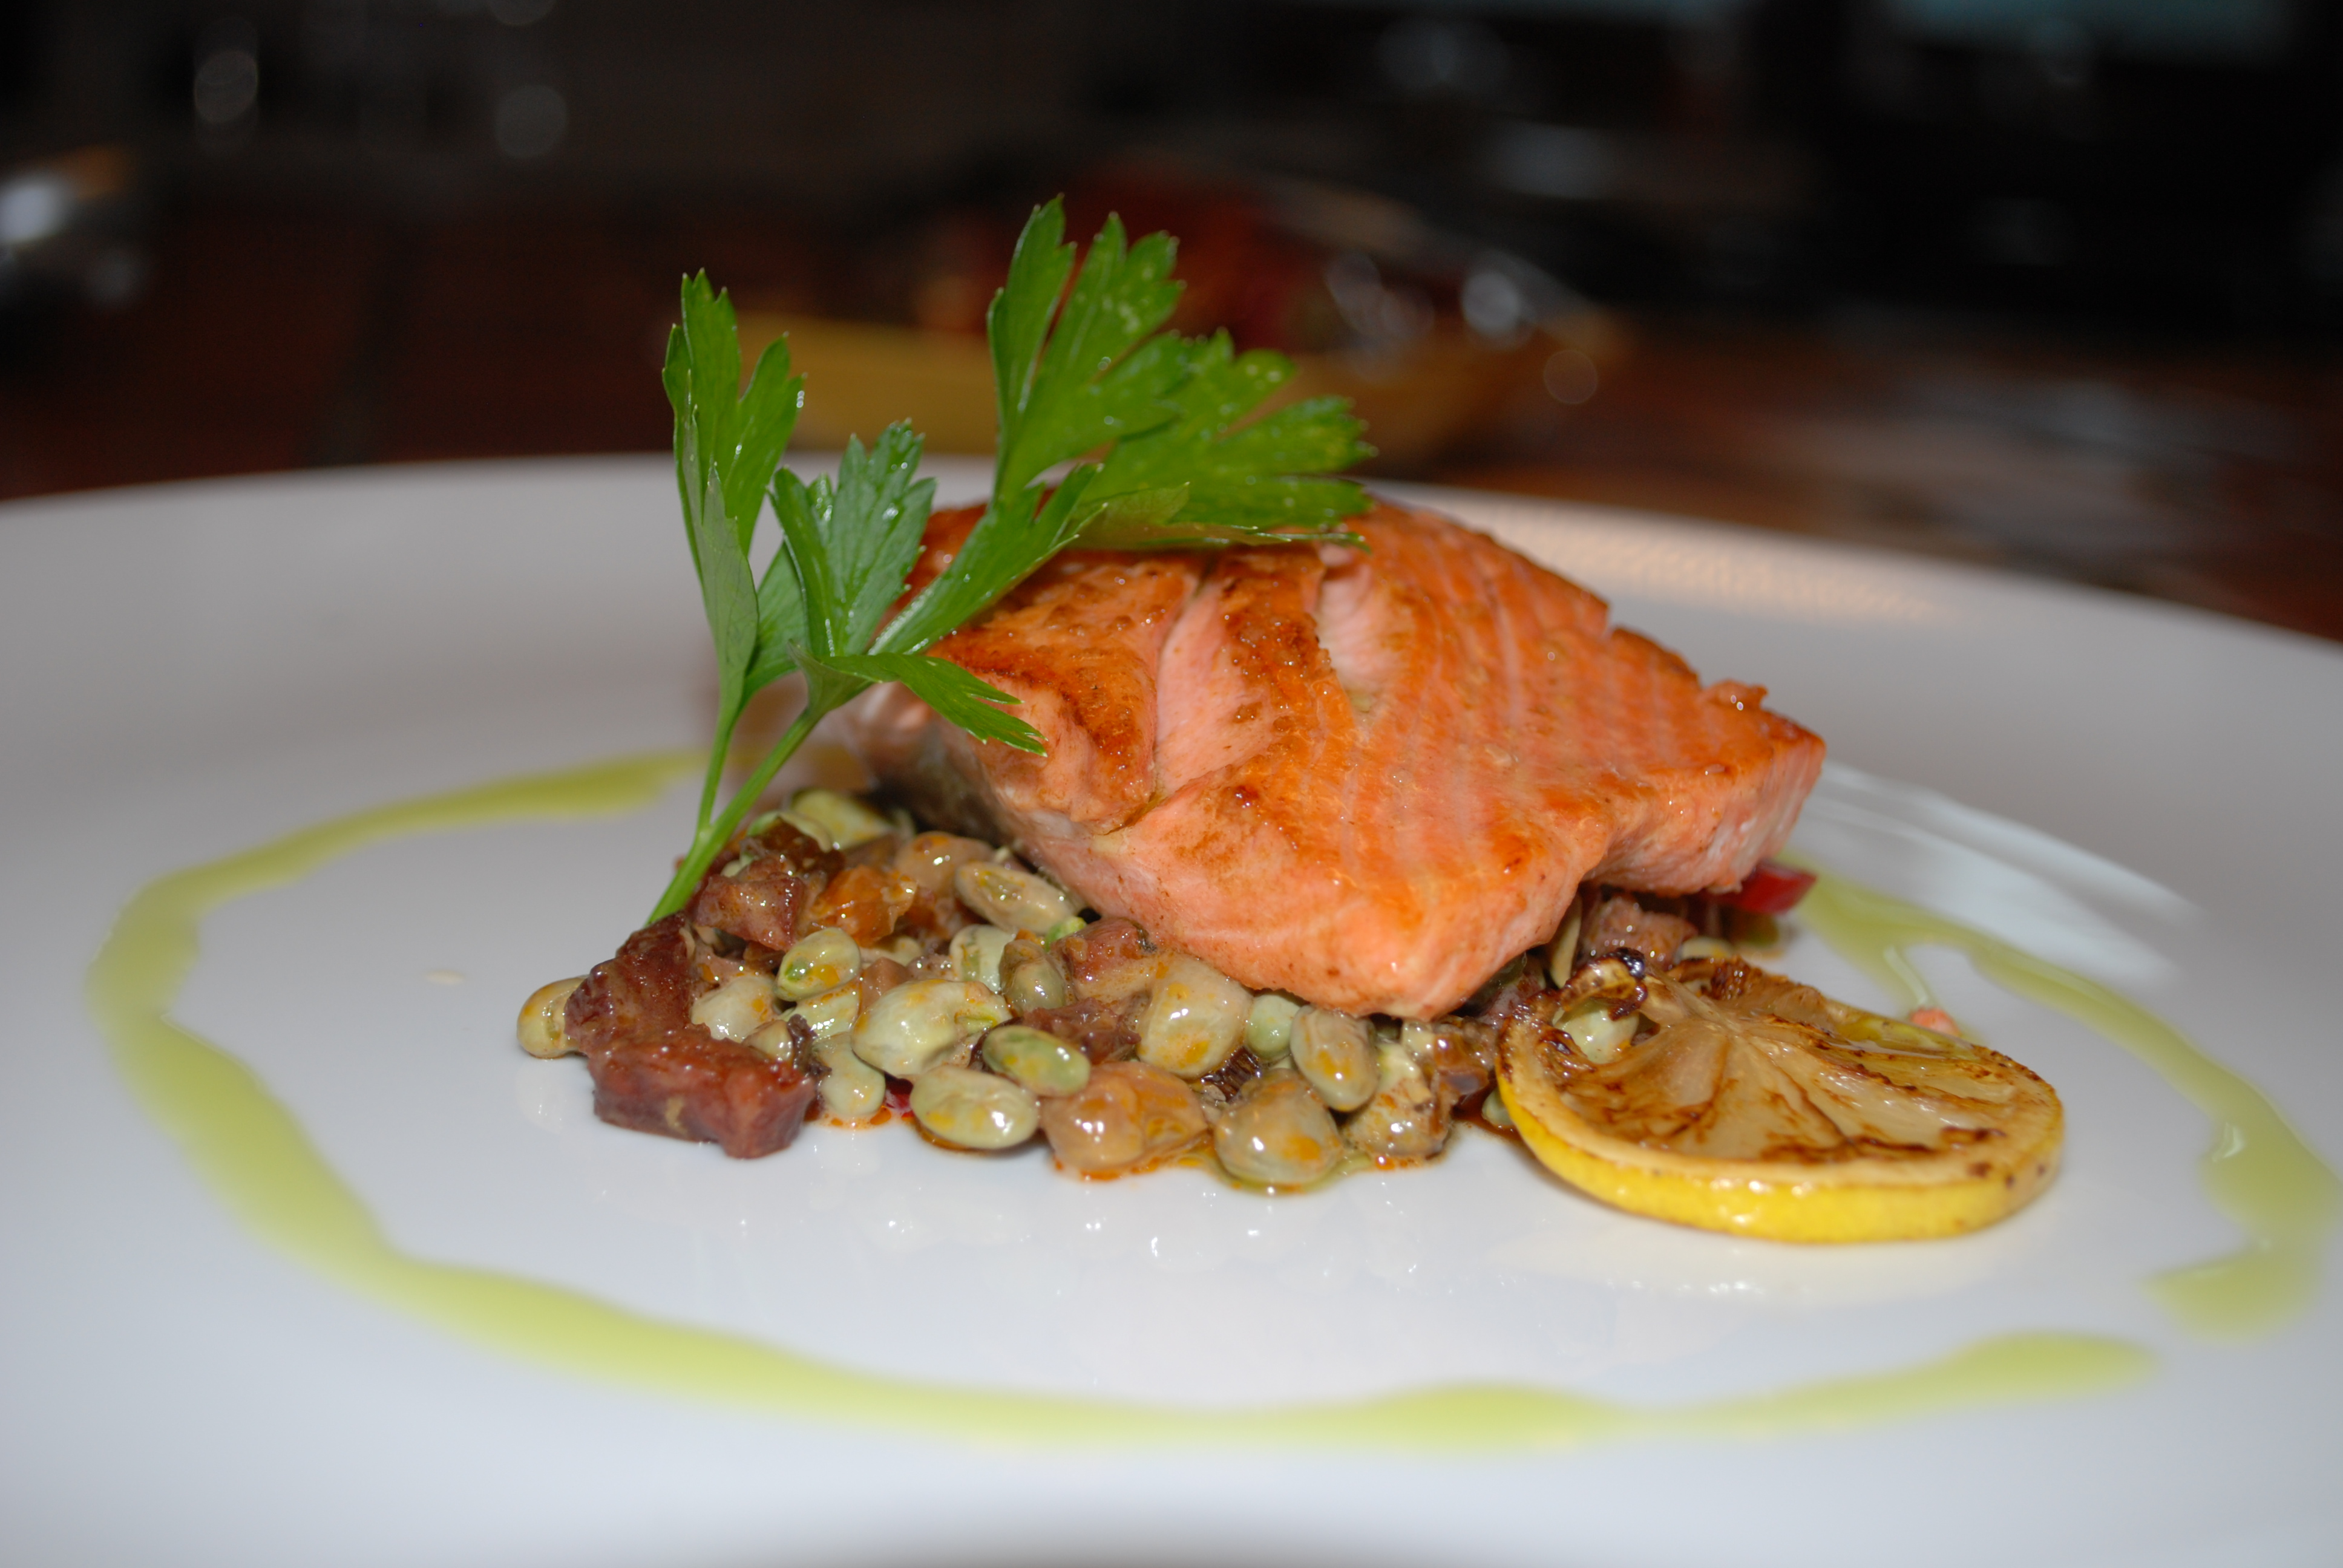 Plate Garnishes for Entries http://whipstone.com/blog/2011/pan-seared-salmon-with-fresh-black-eyed-pea-and-chorizo-relish/